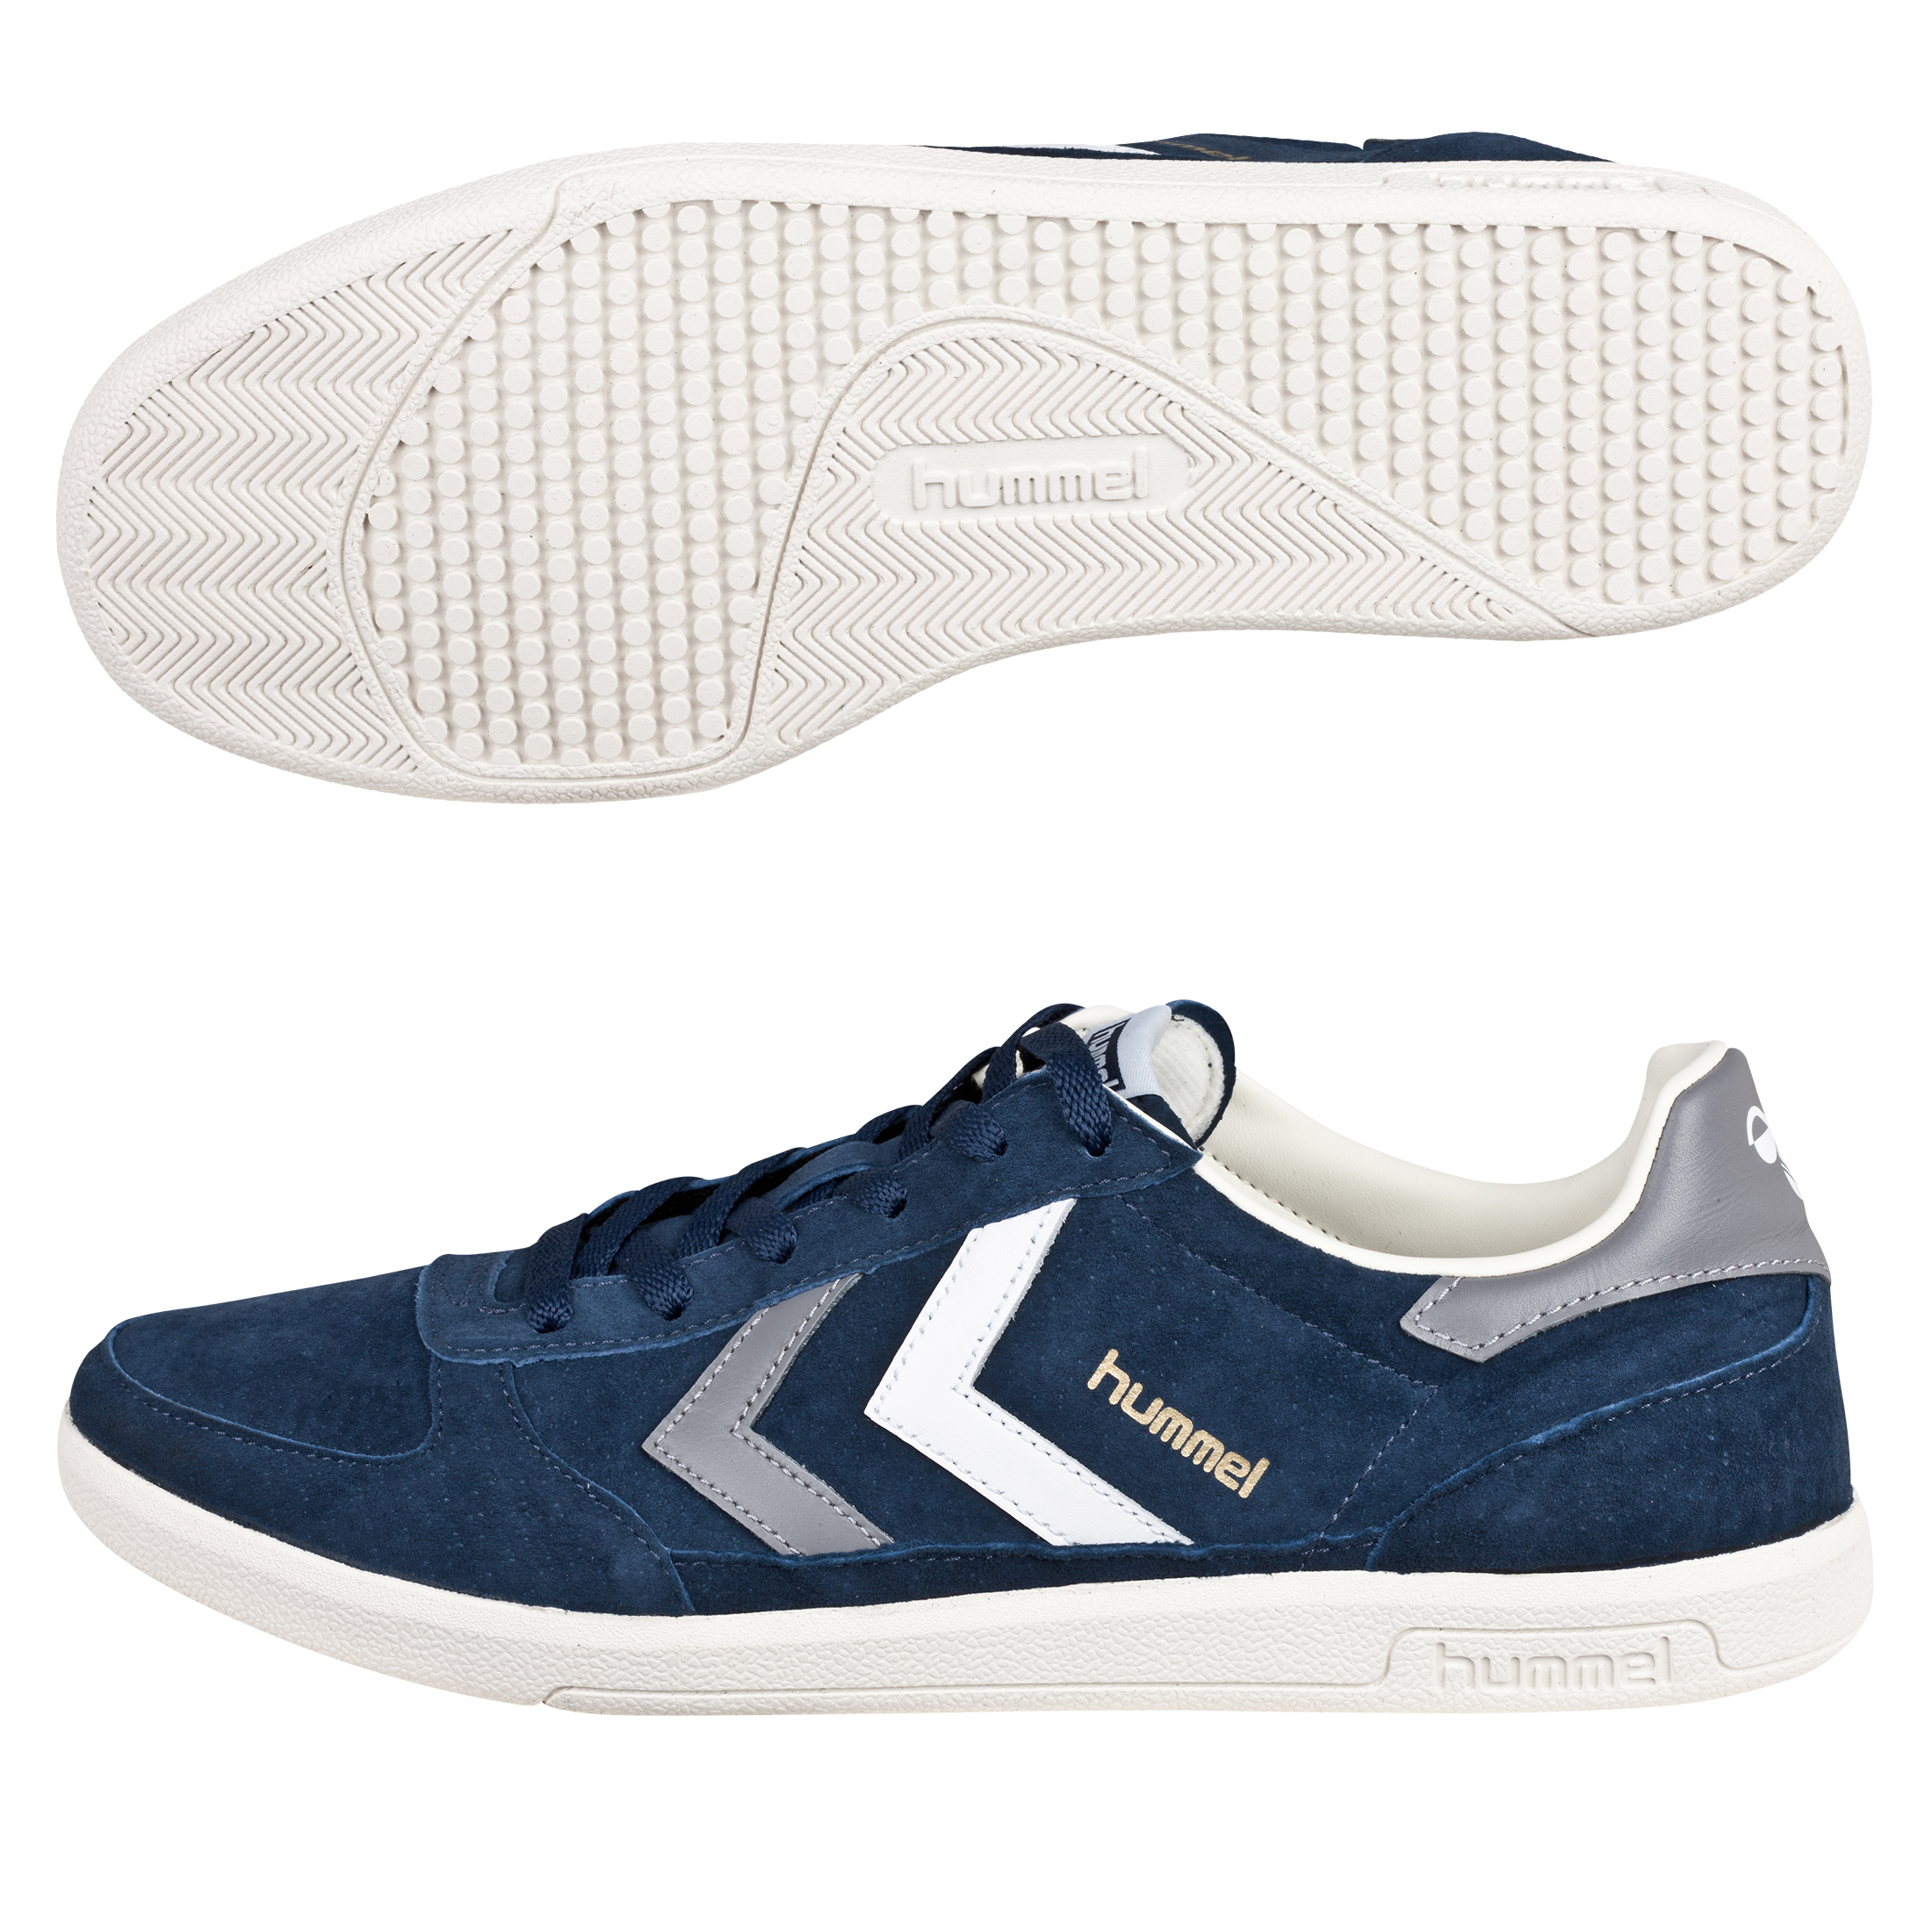 Hummel Victory Low Trainers - Dress Blue/Frost Grey/White